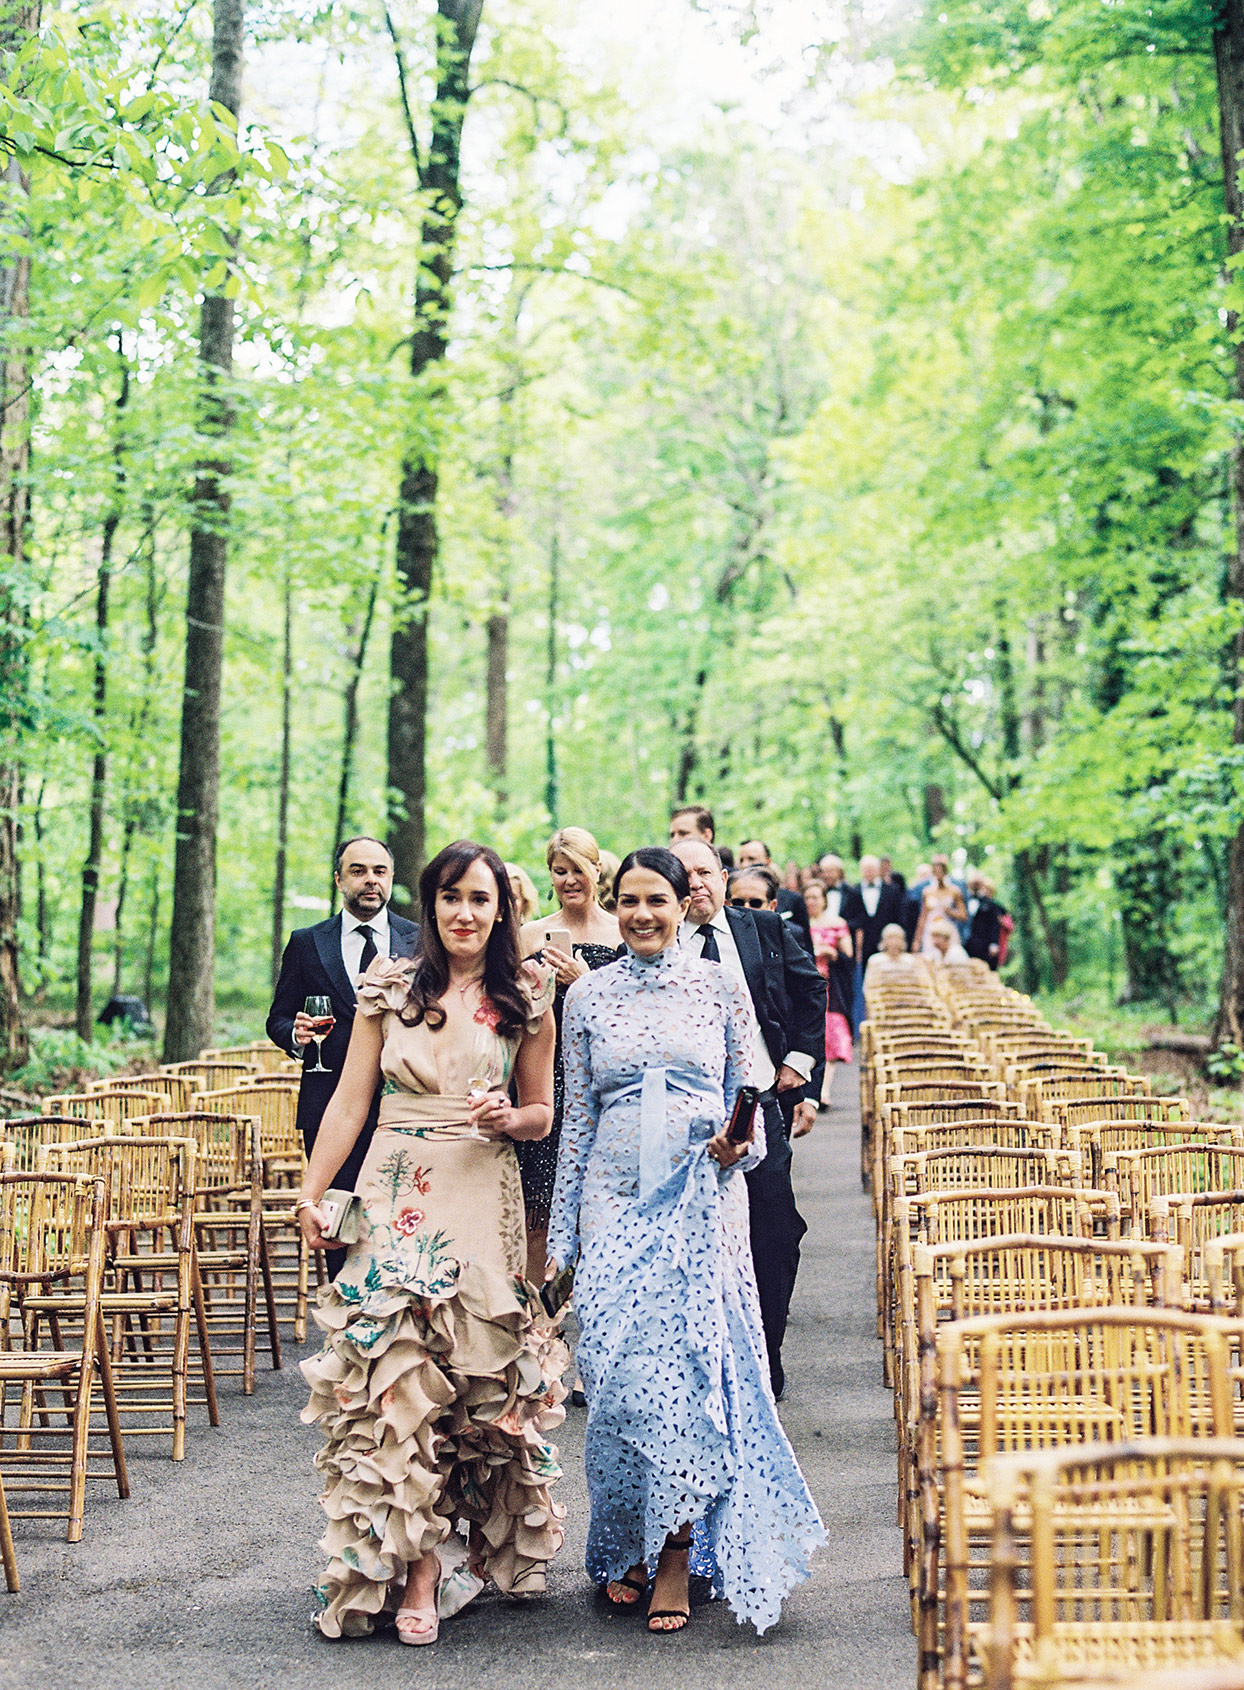 wedding guests walking up ceremony aisle